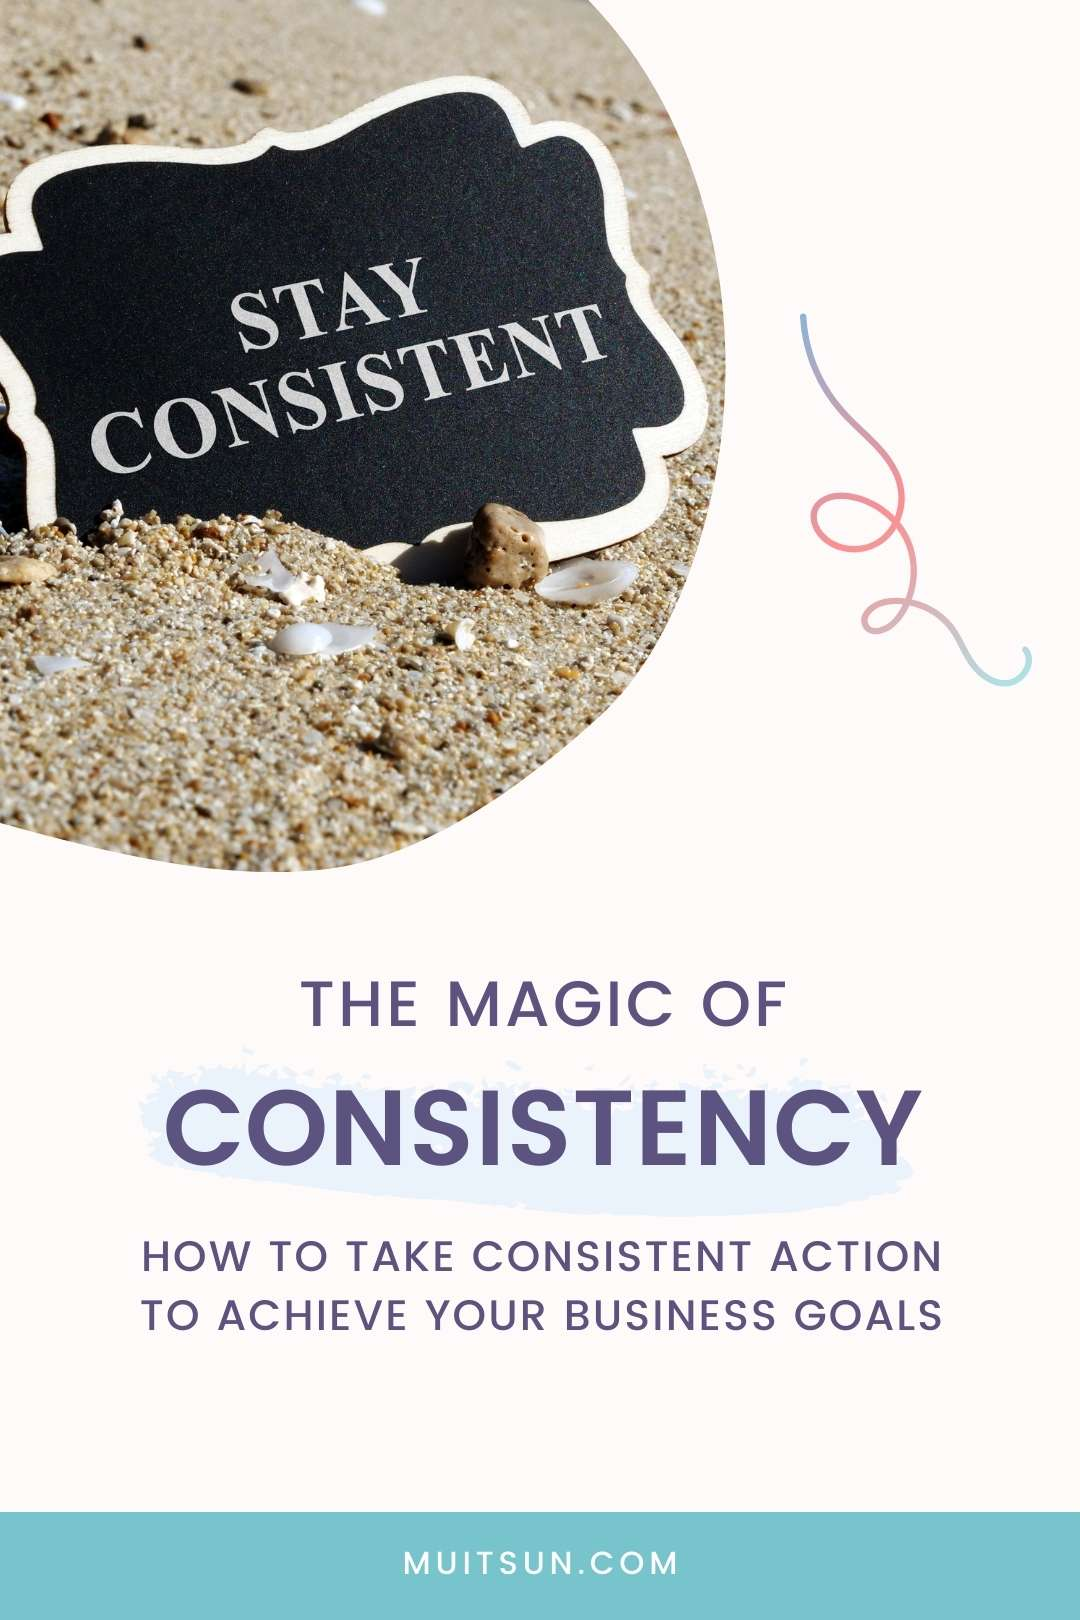 The Magic of Consistency